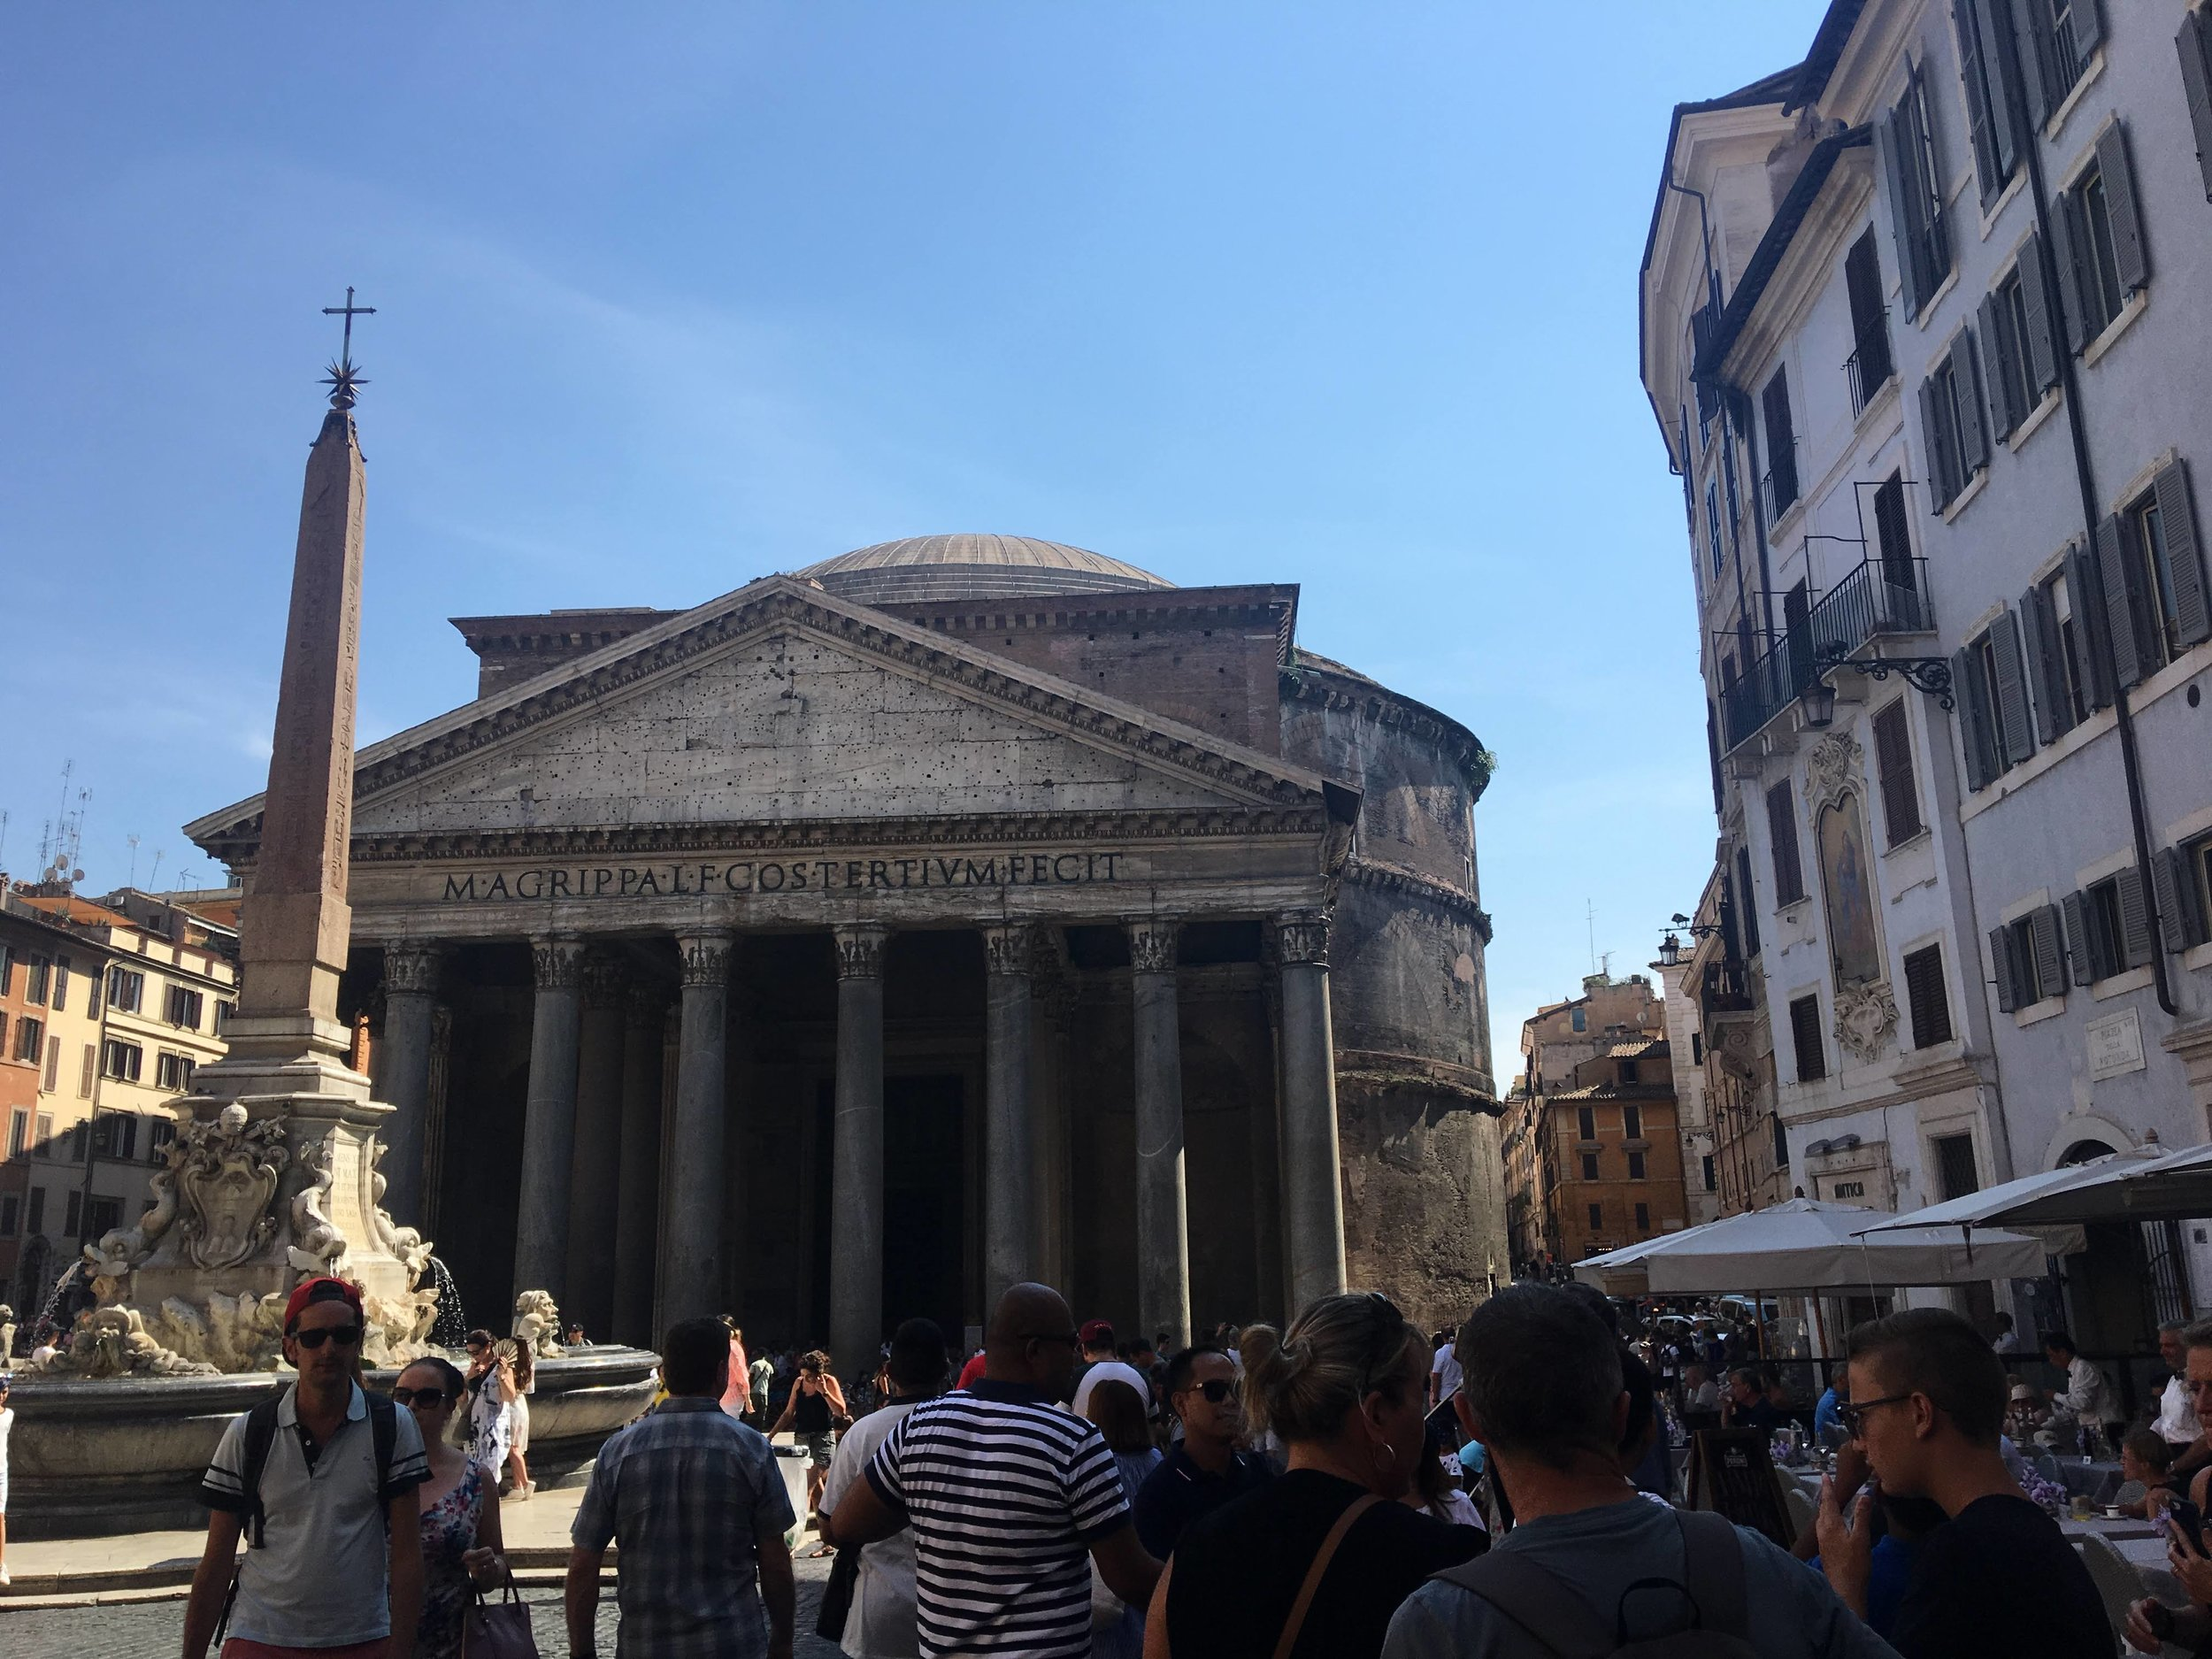 Went to the Roman Pantheon